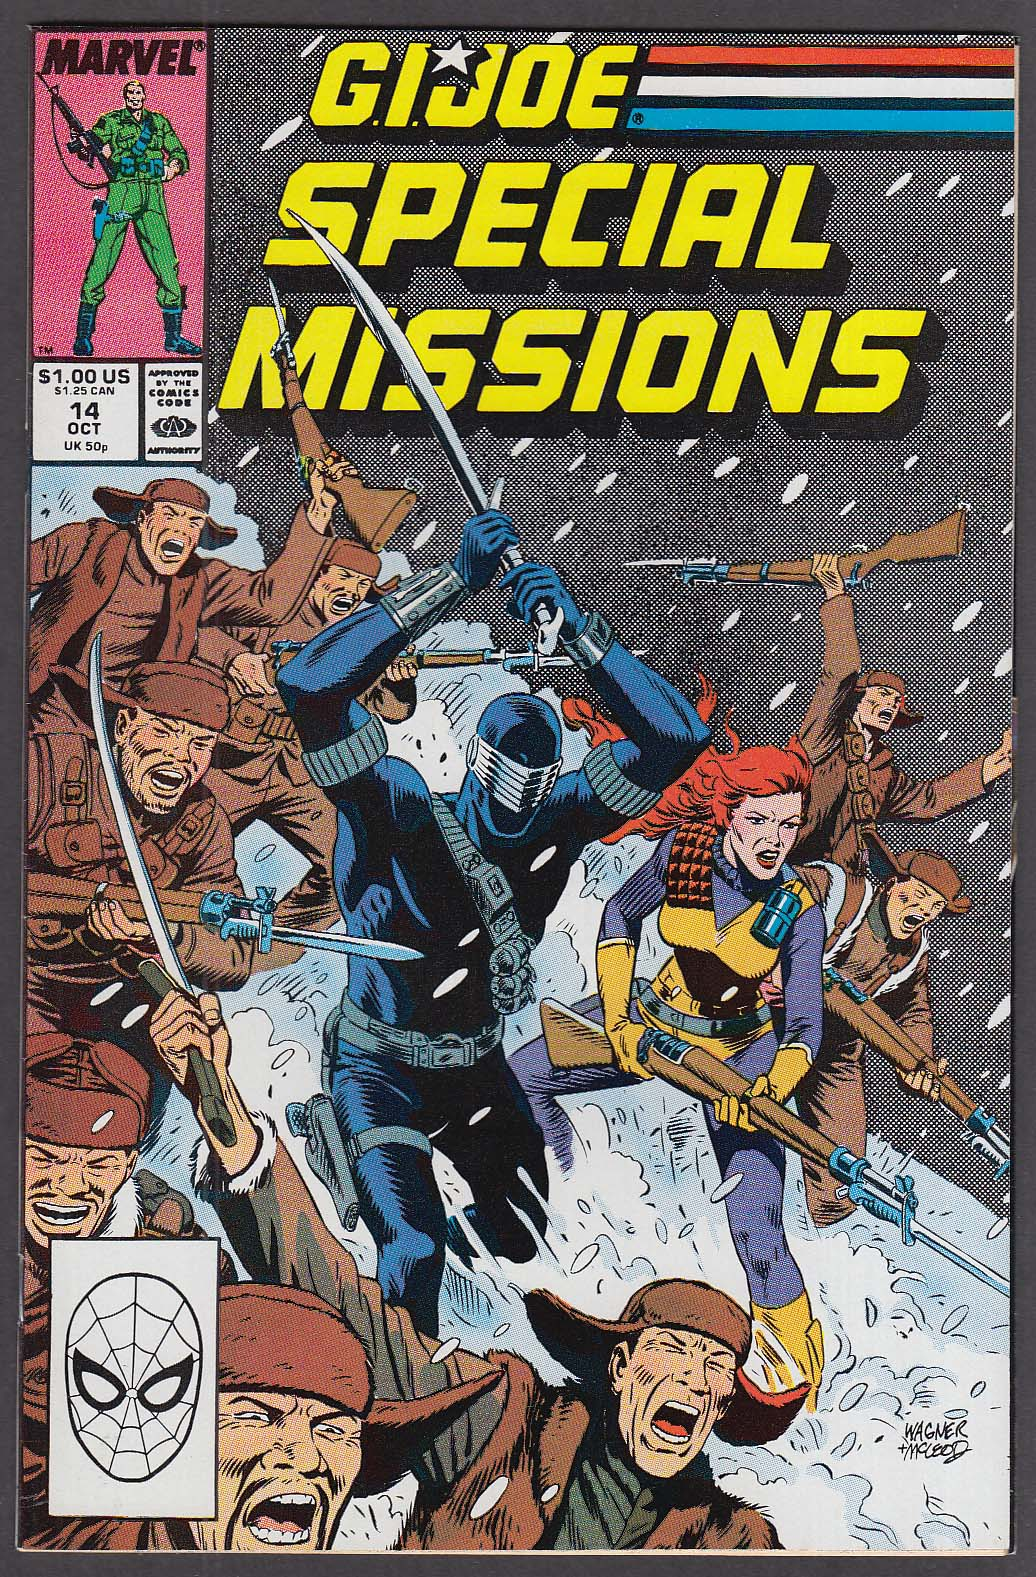 GI JOE SPECIAL MISSIONS #14 Marvel comic book 10 1988